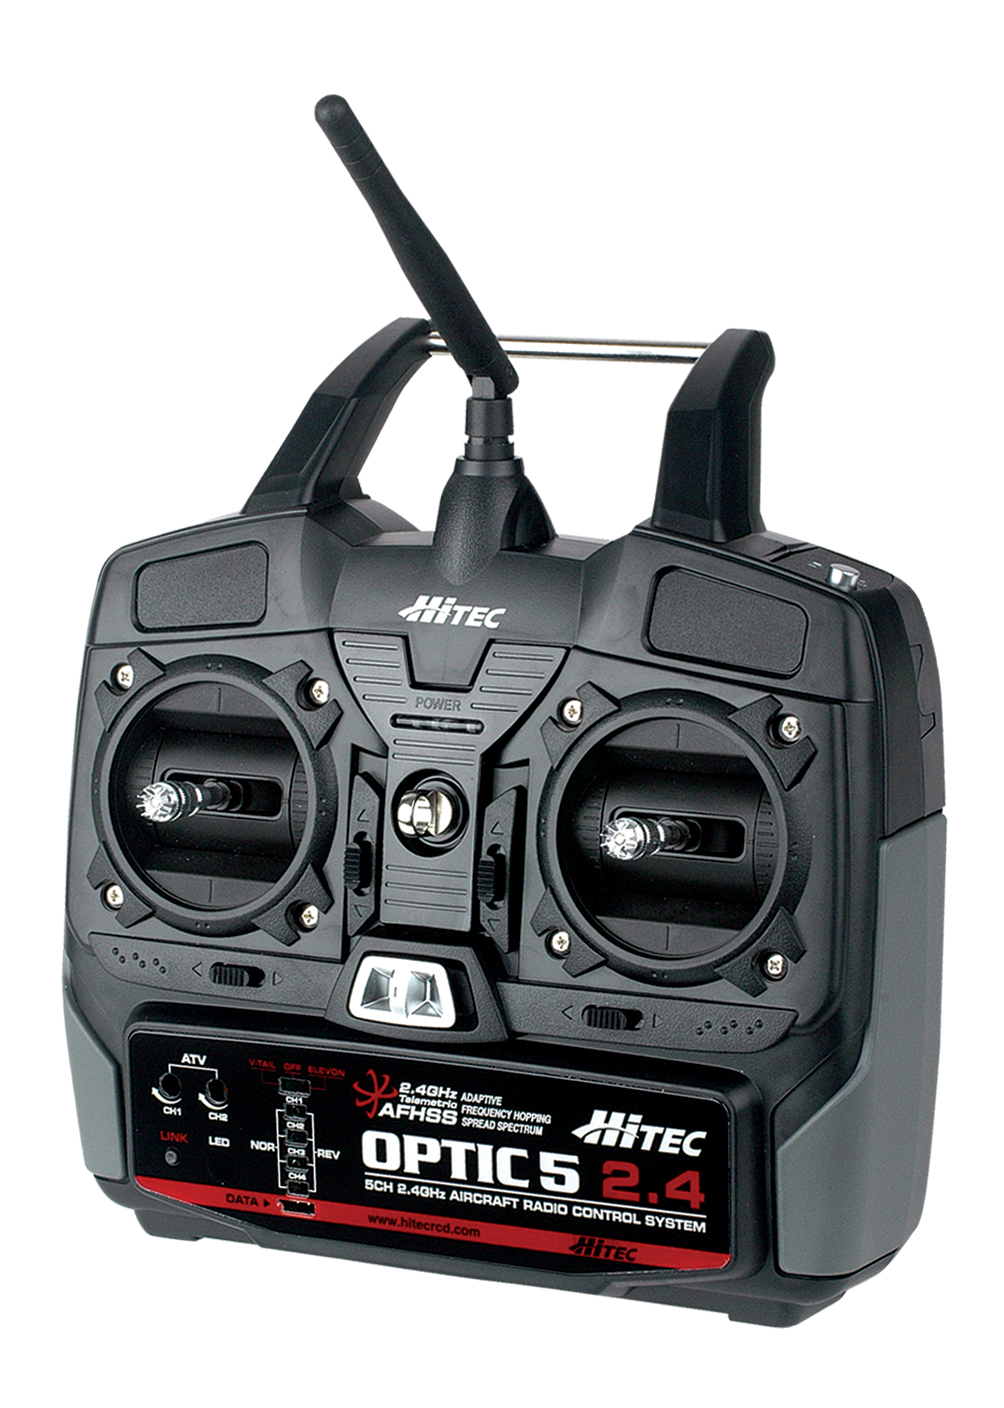 Hitec released the Optic 5, a new 5-Channel 2.4GHz Radio.